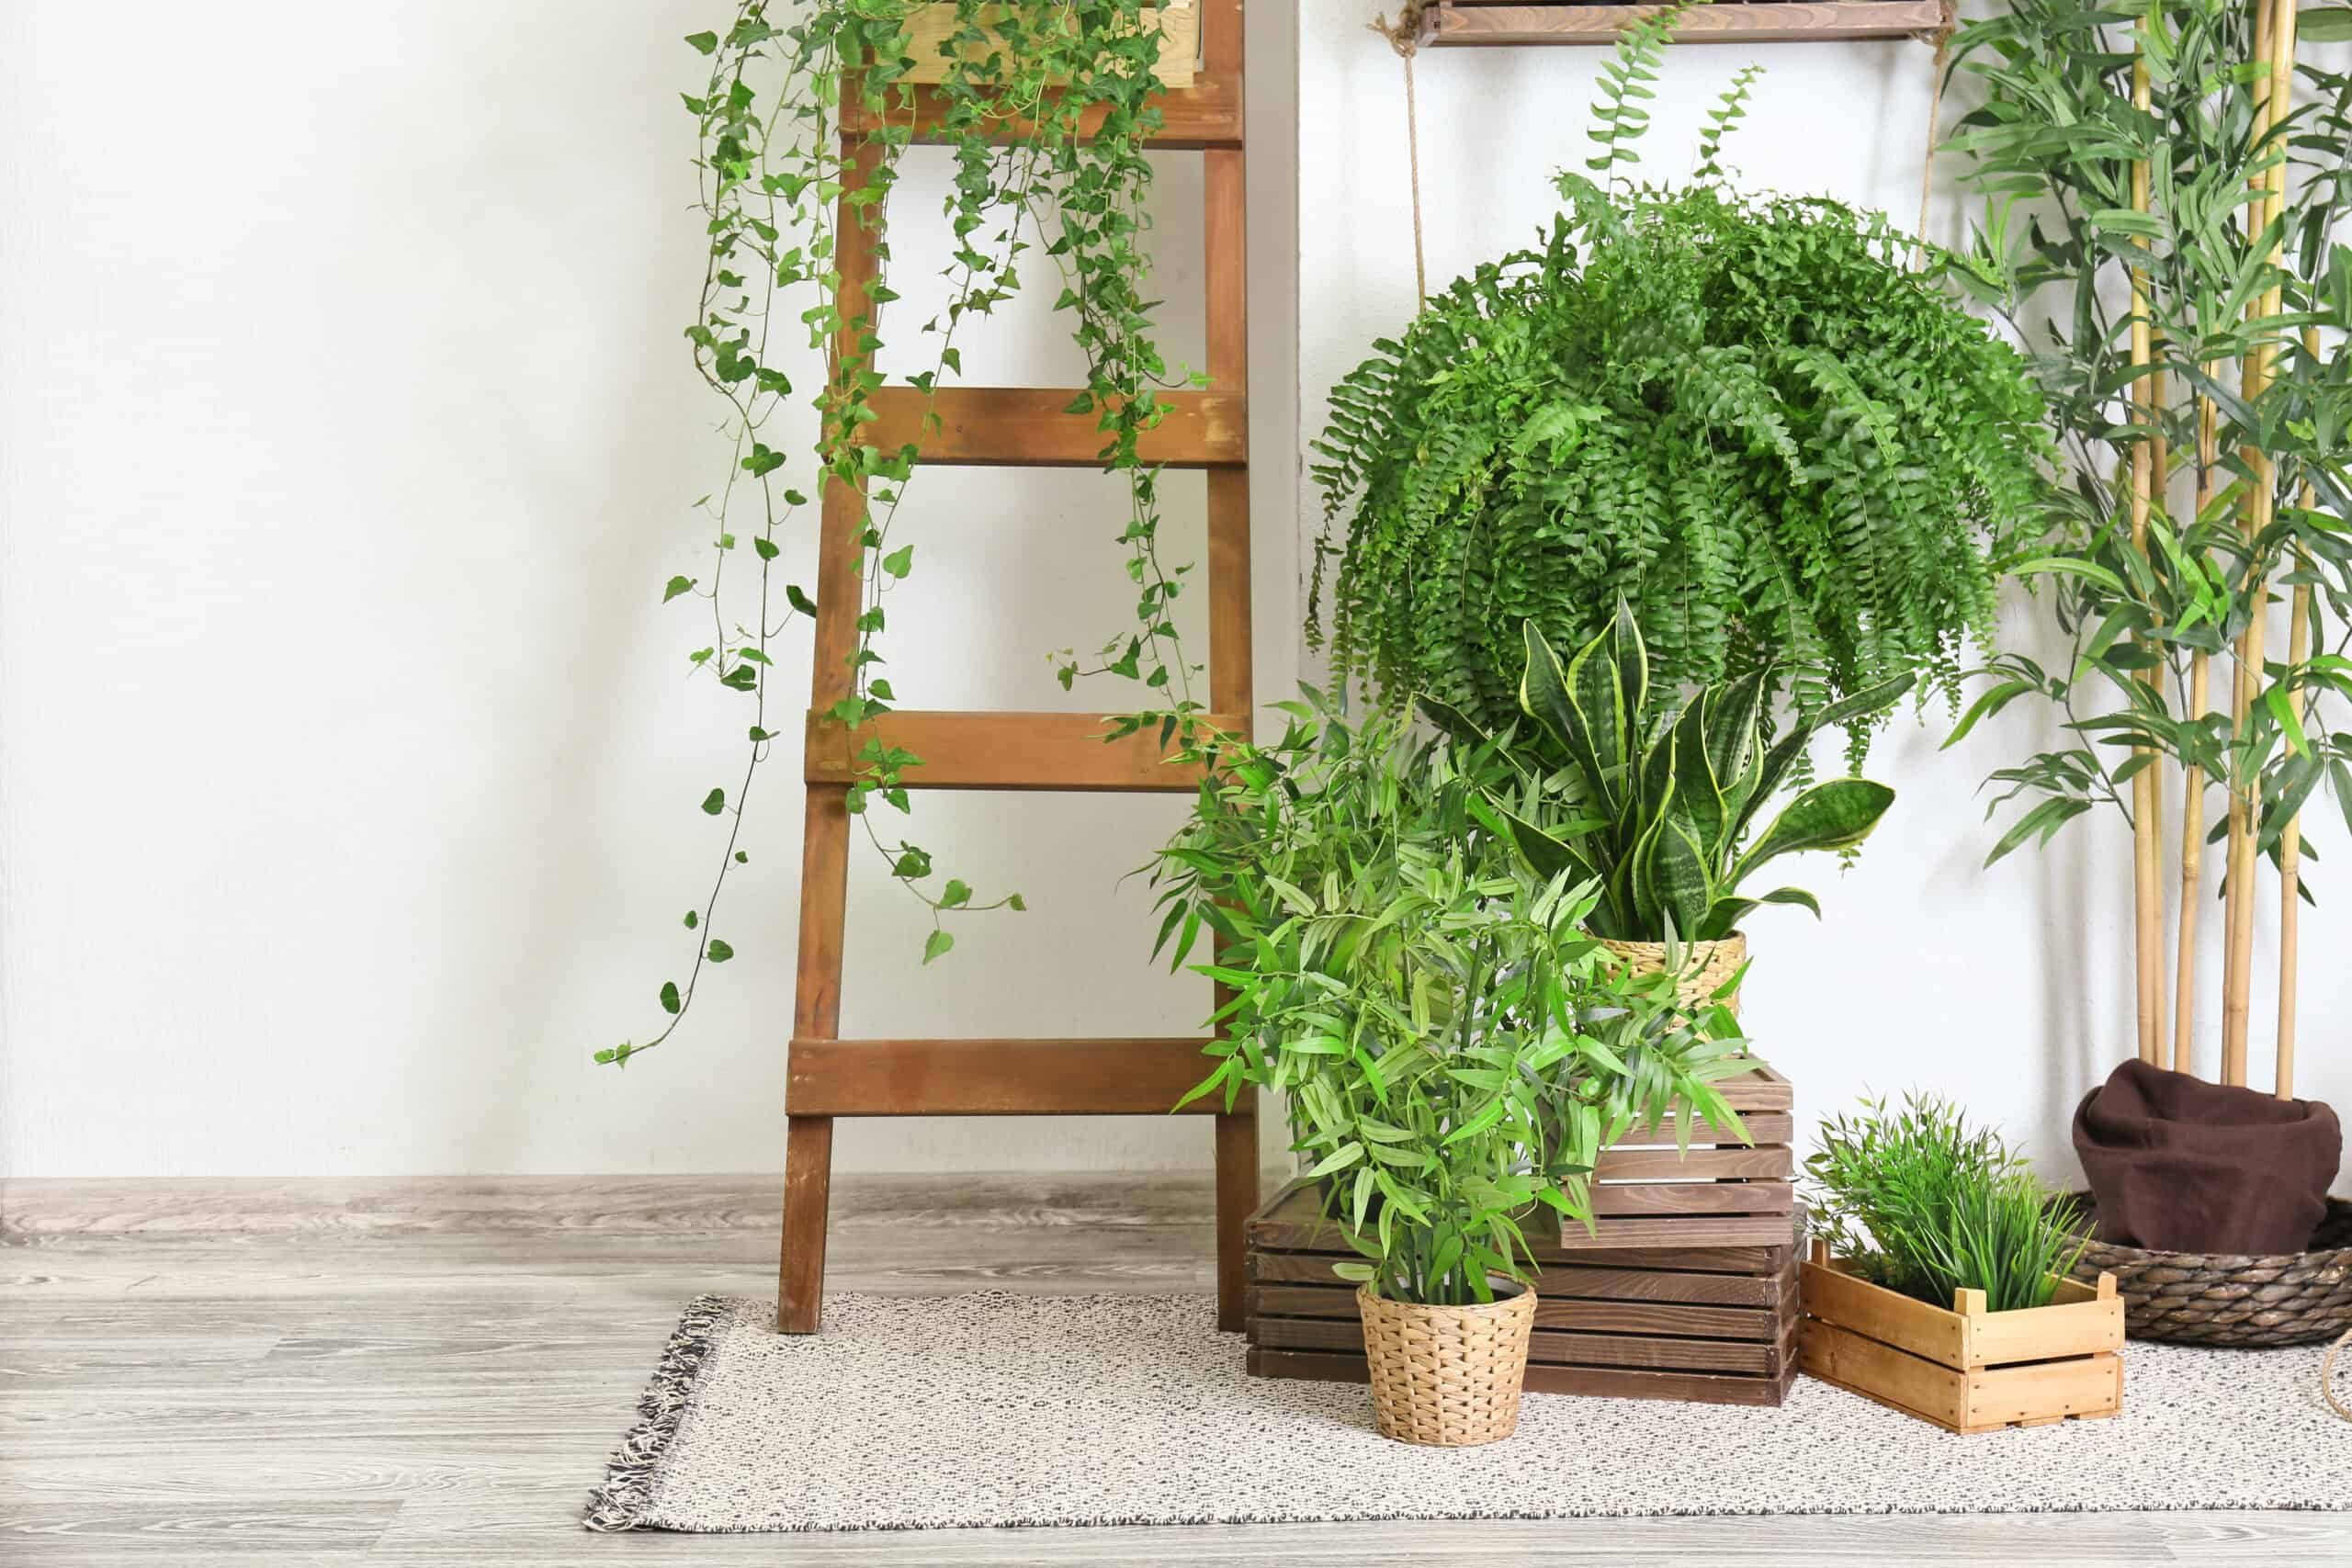 8 Air Purifying Indoor Plants For Your Home to Clean The Air